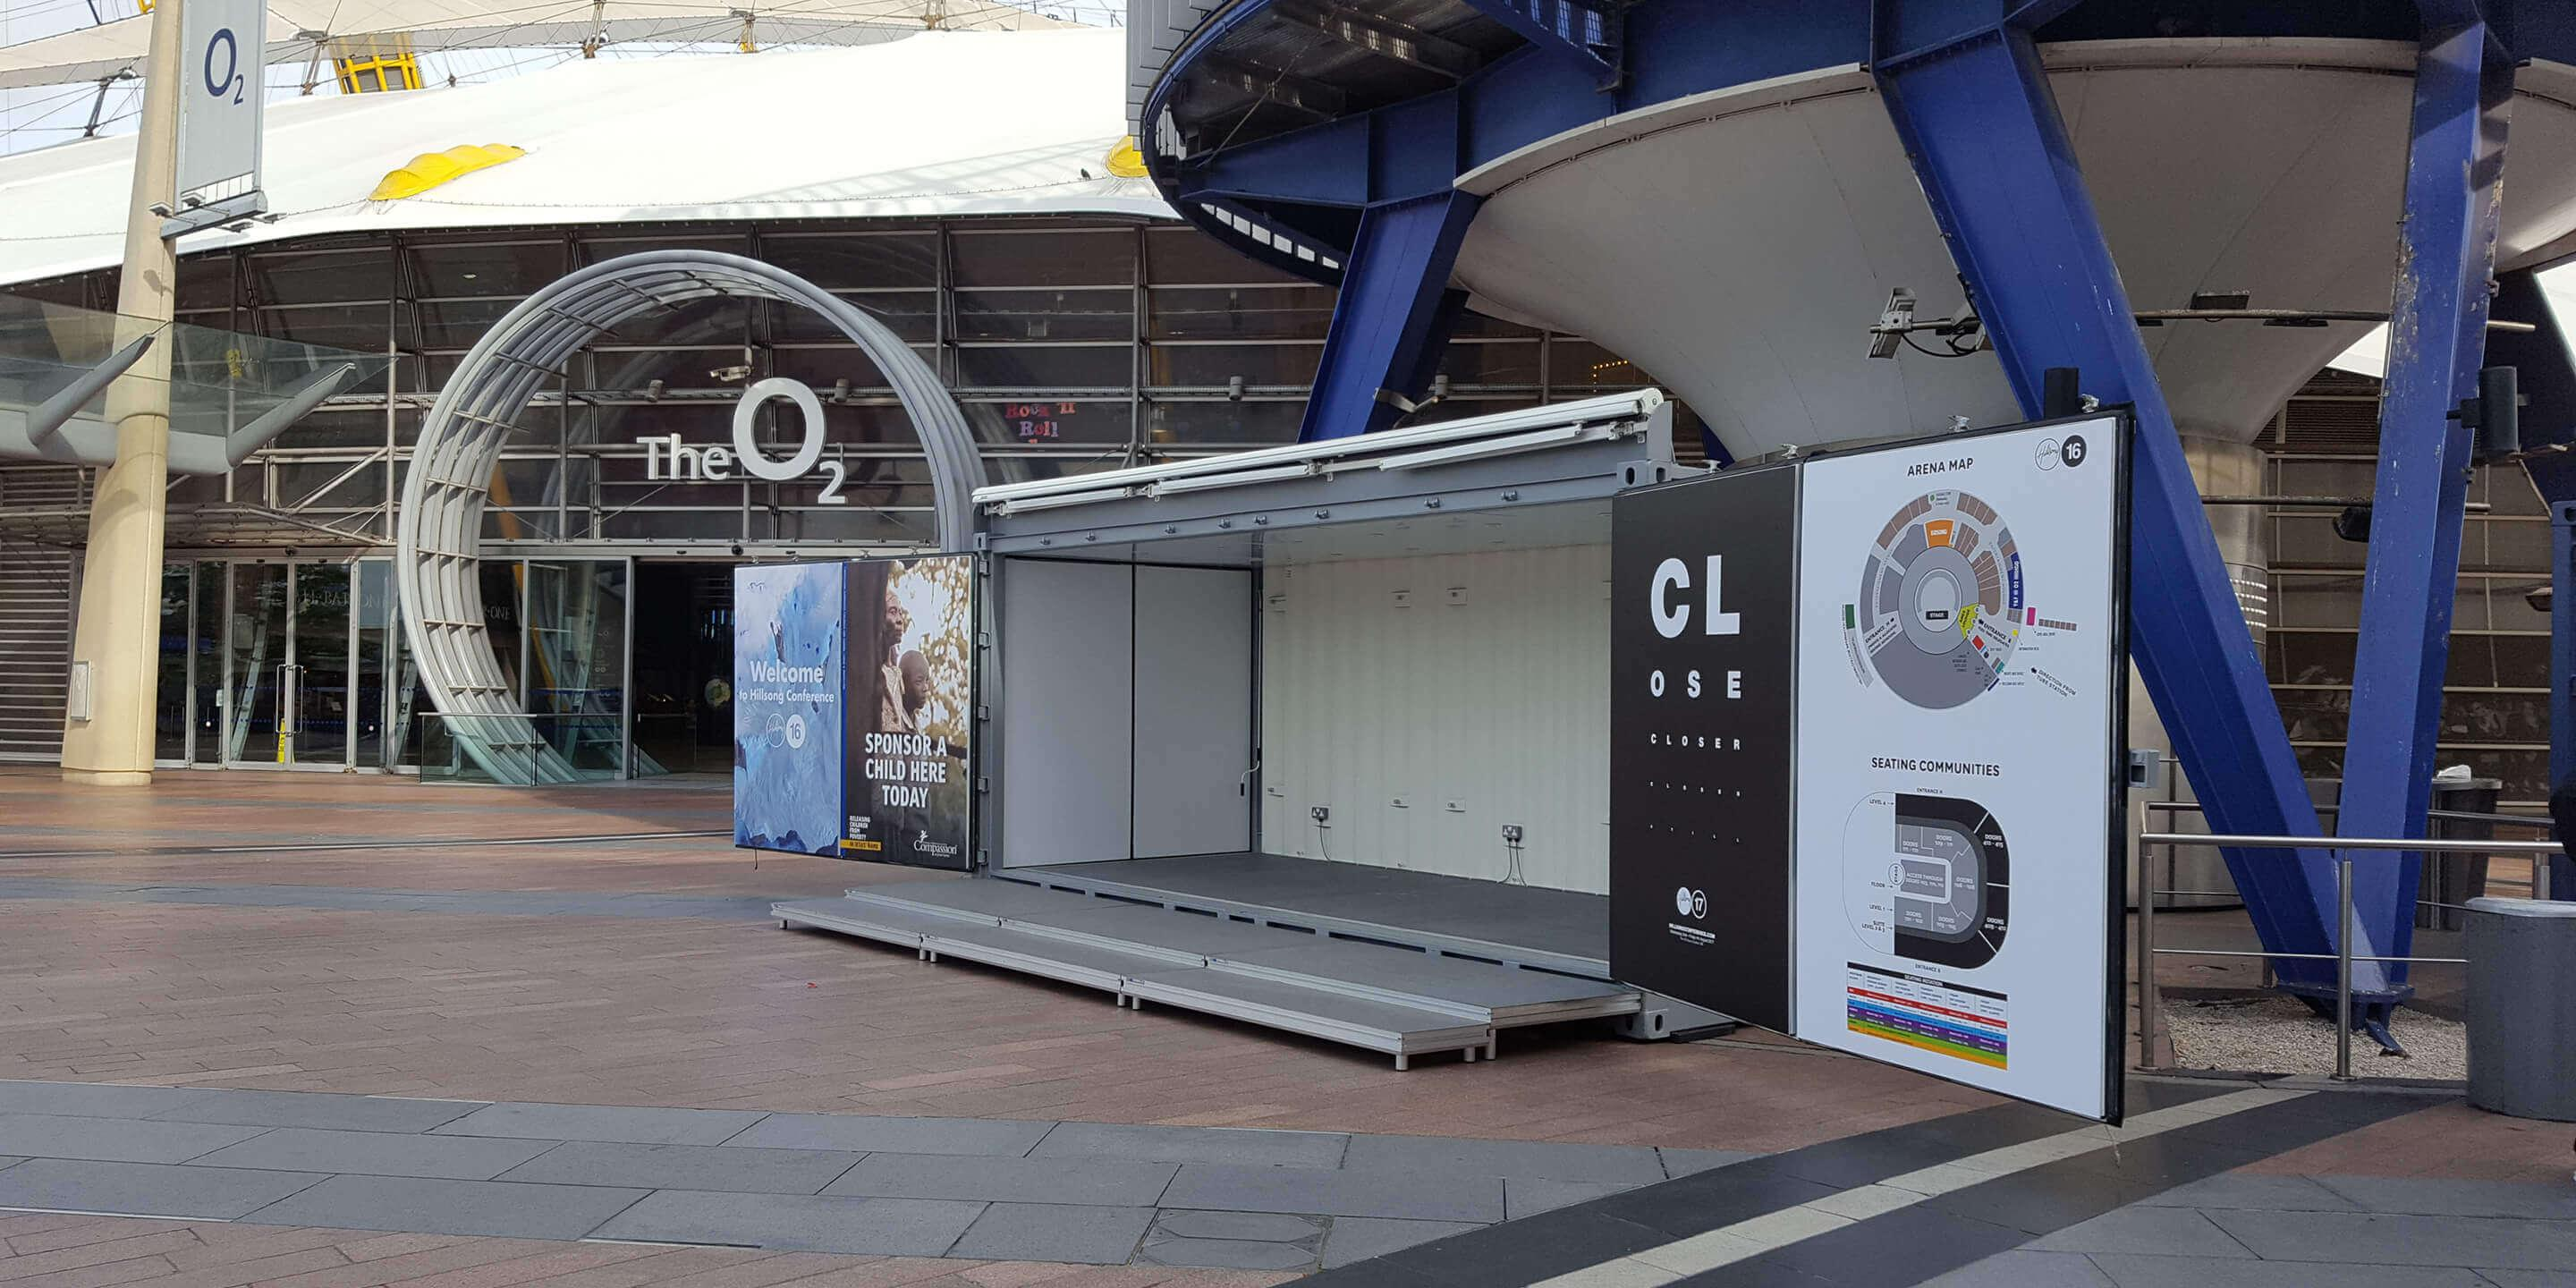 Event Shipping Containers: Studio Event Container Outside O2 Arena in London